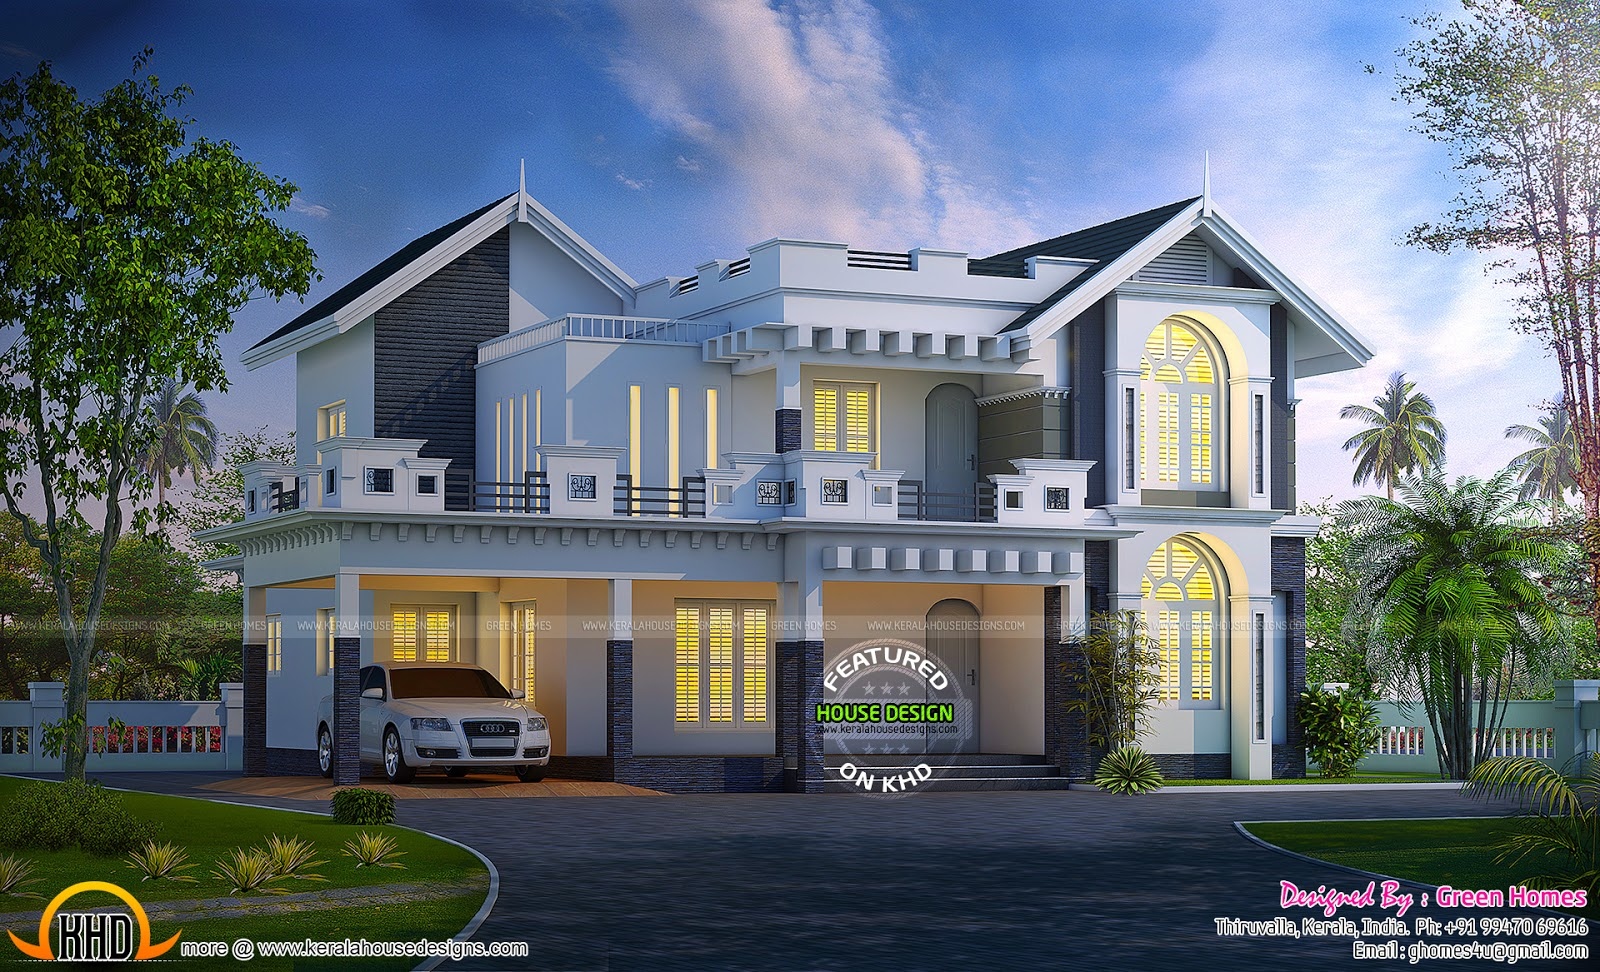 New kerala house plans for june 2015 keralahousedesigns for Latest house plan